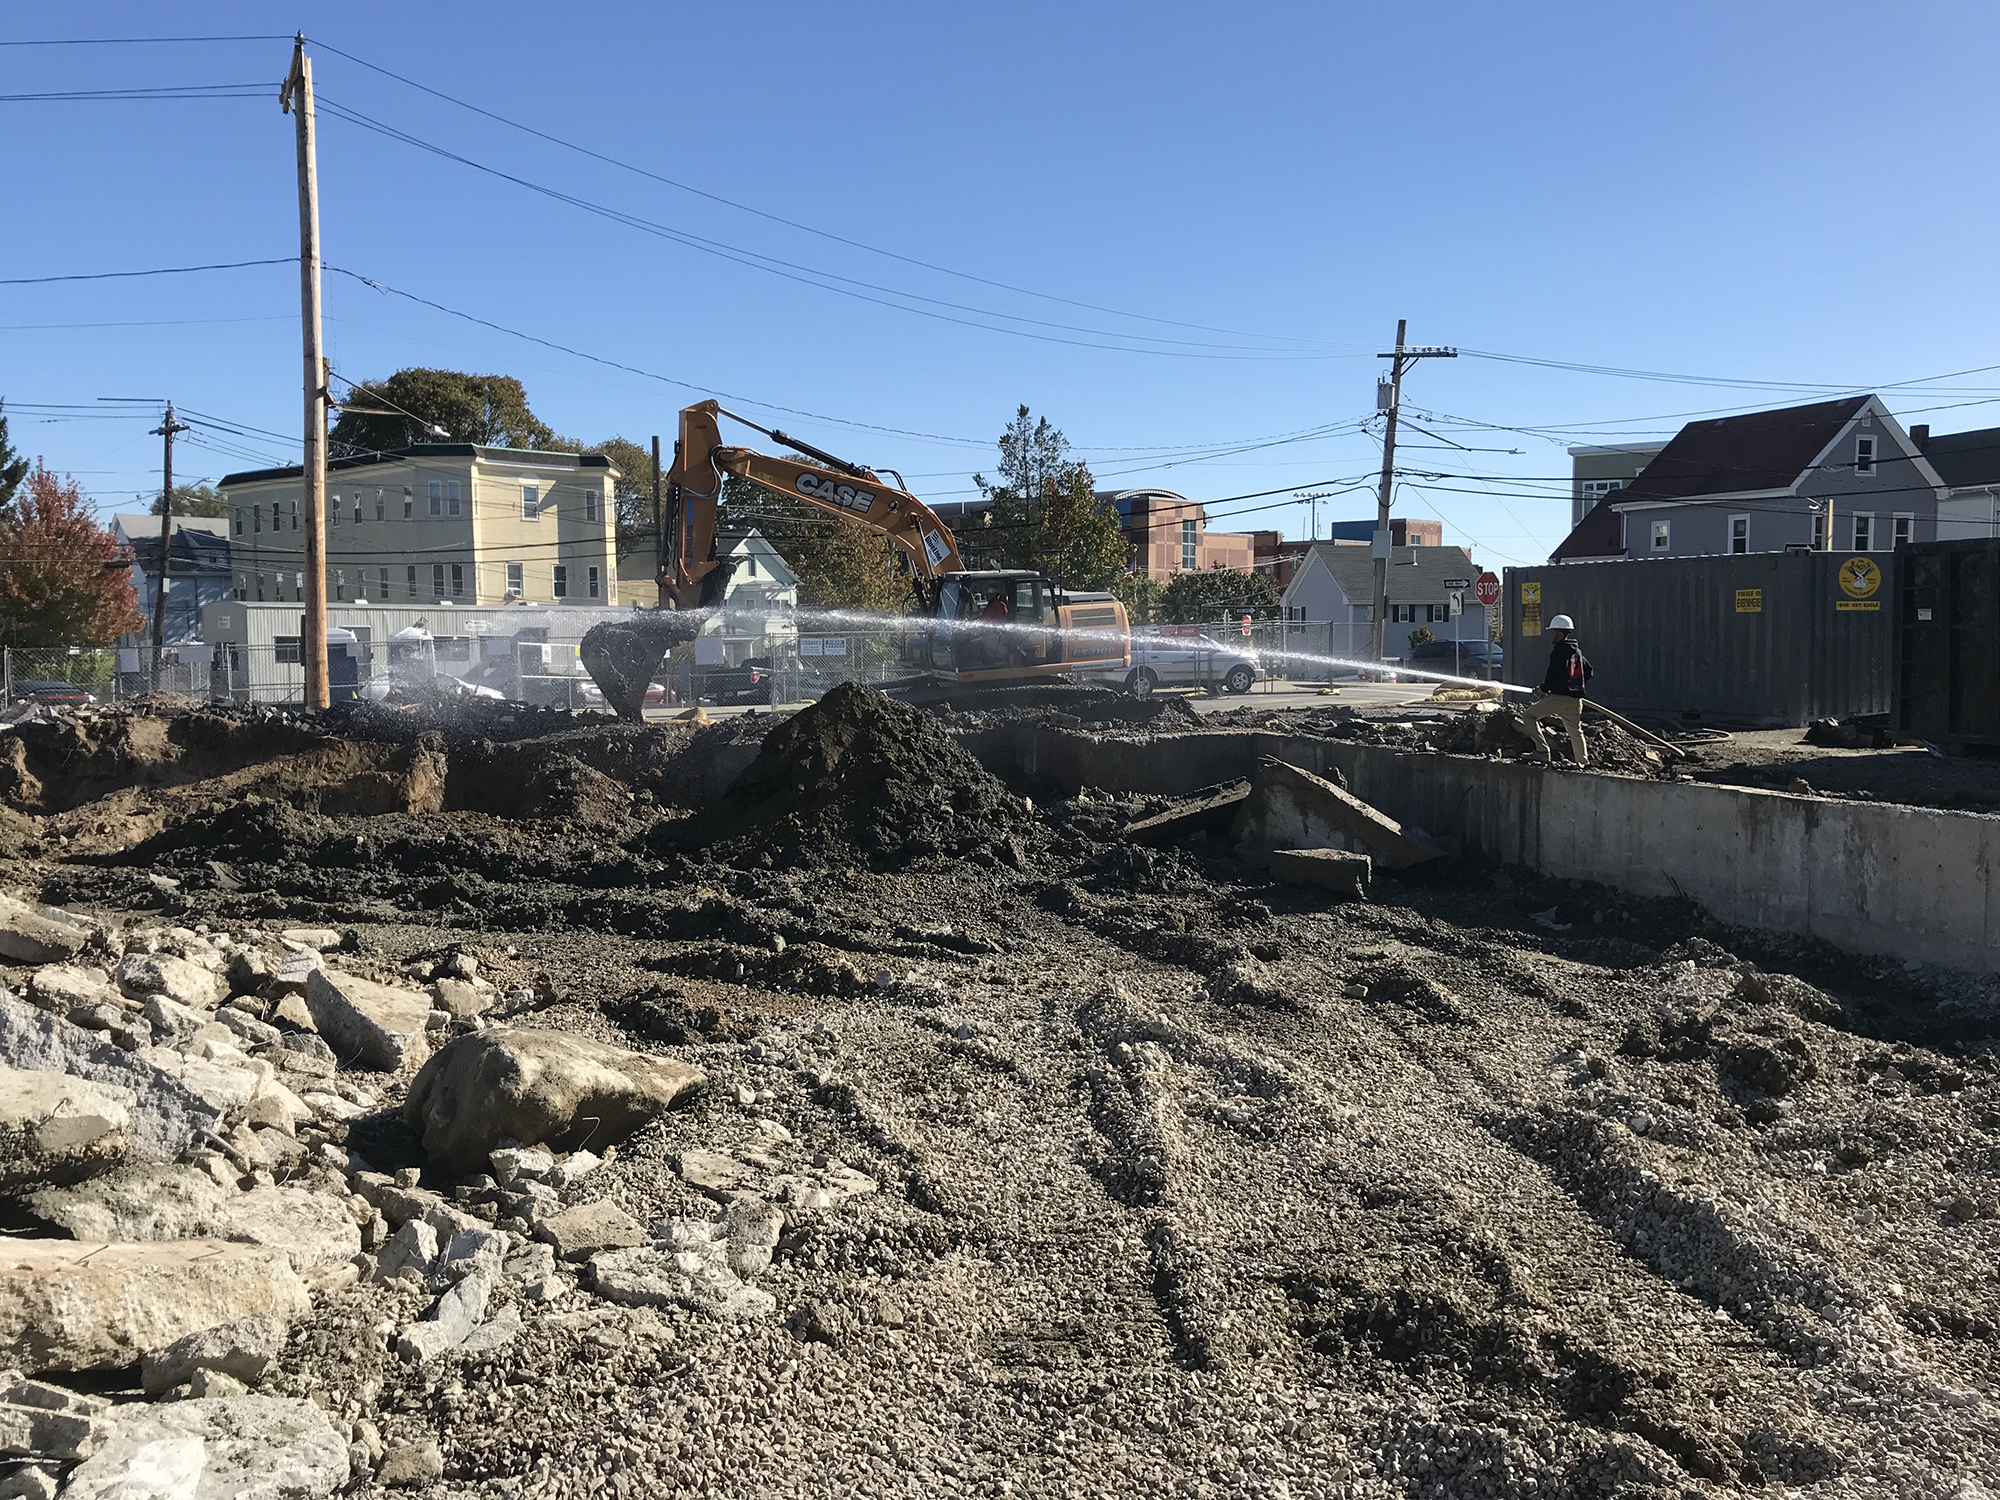 Demolition begins at 242 Spencer Avenue in Chelsea